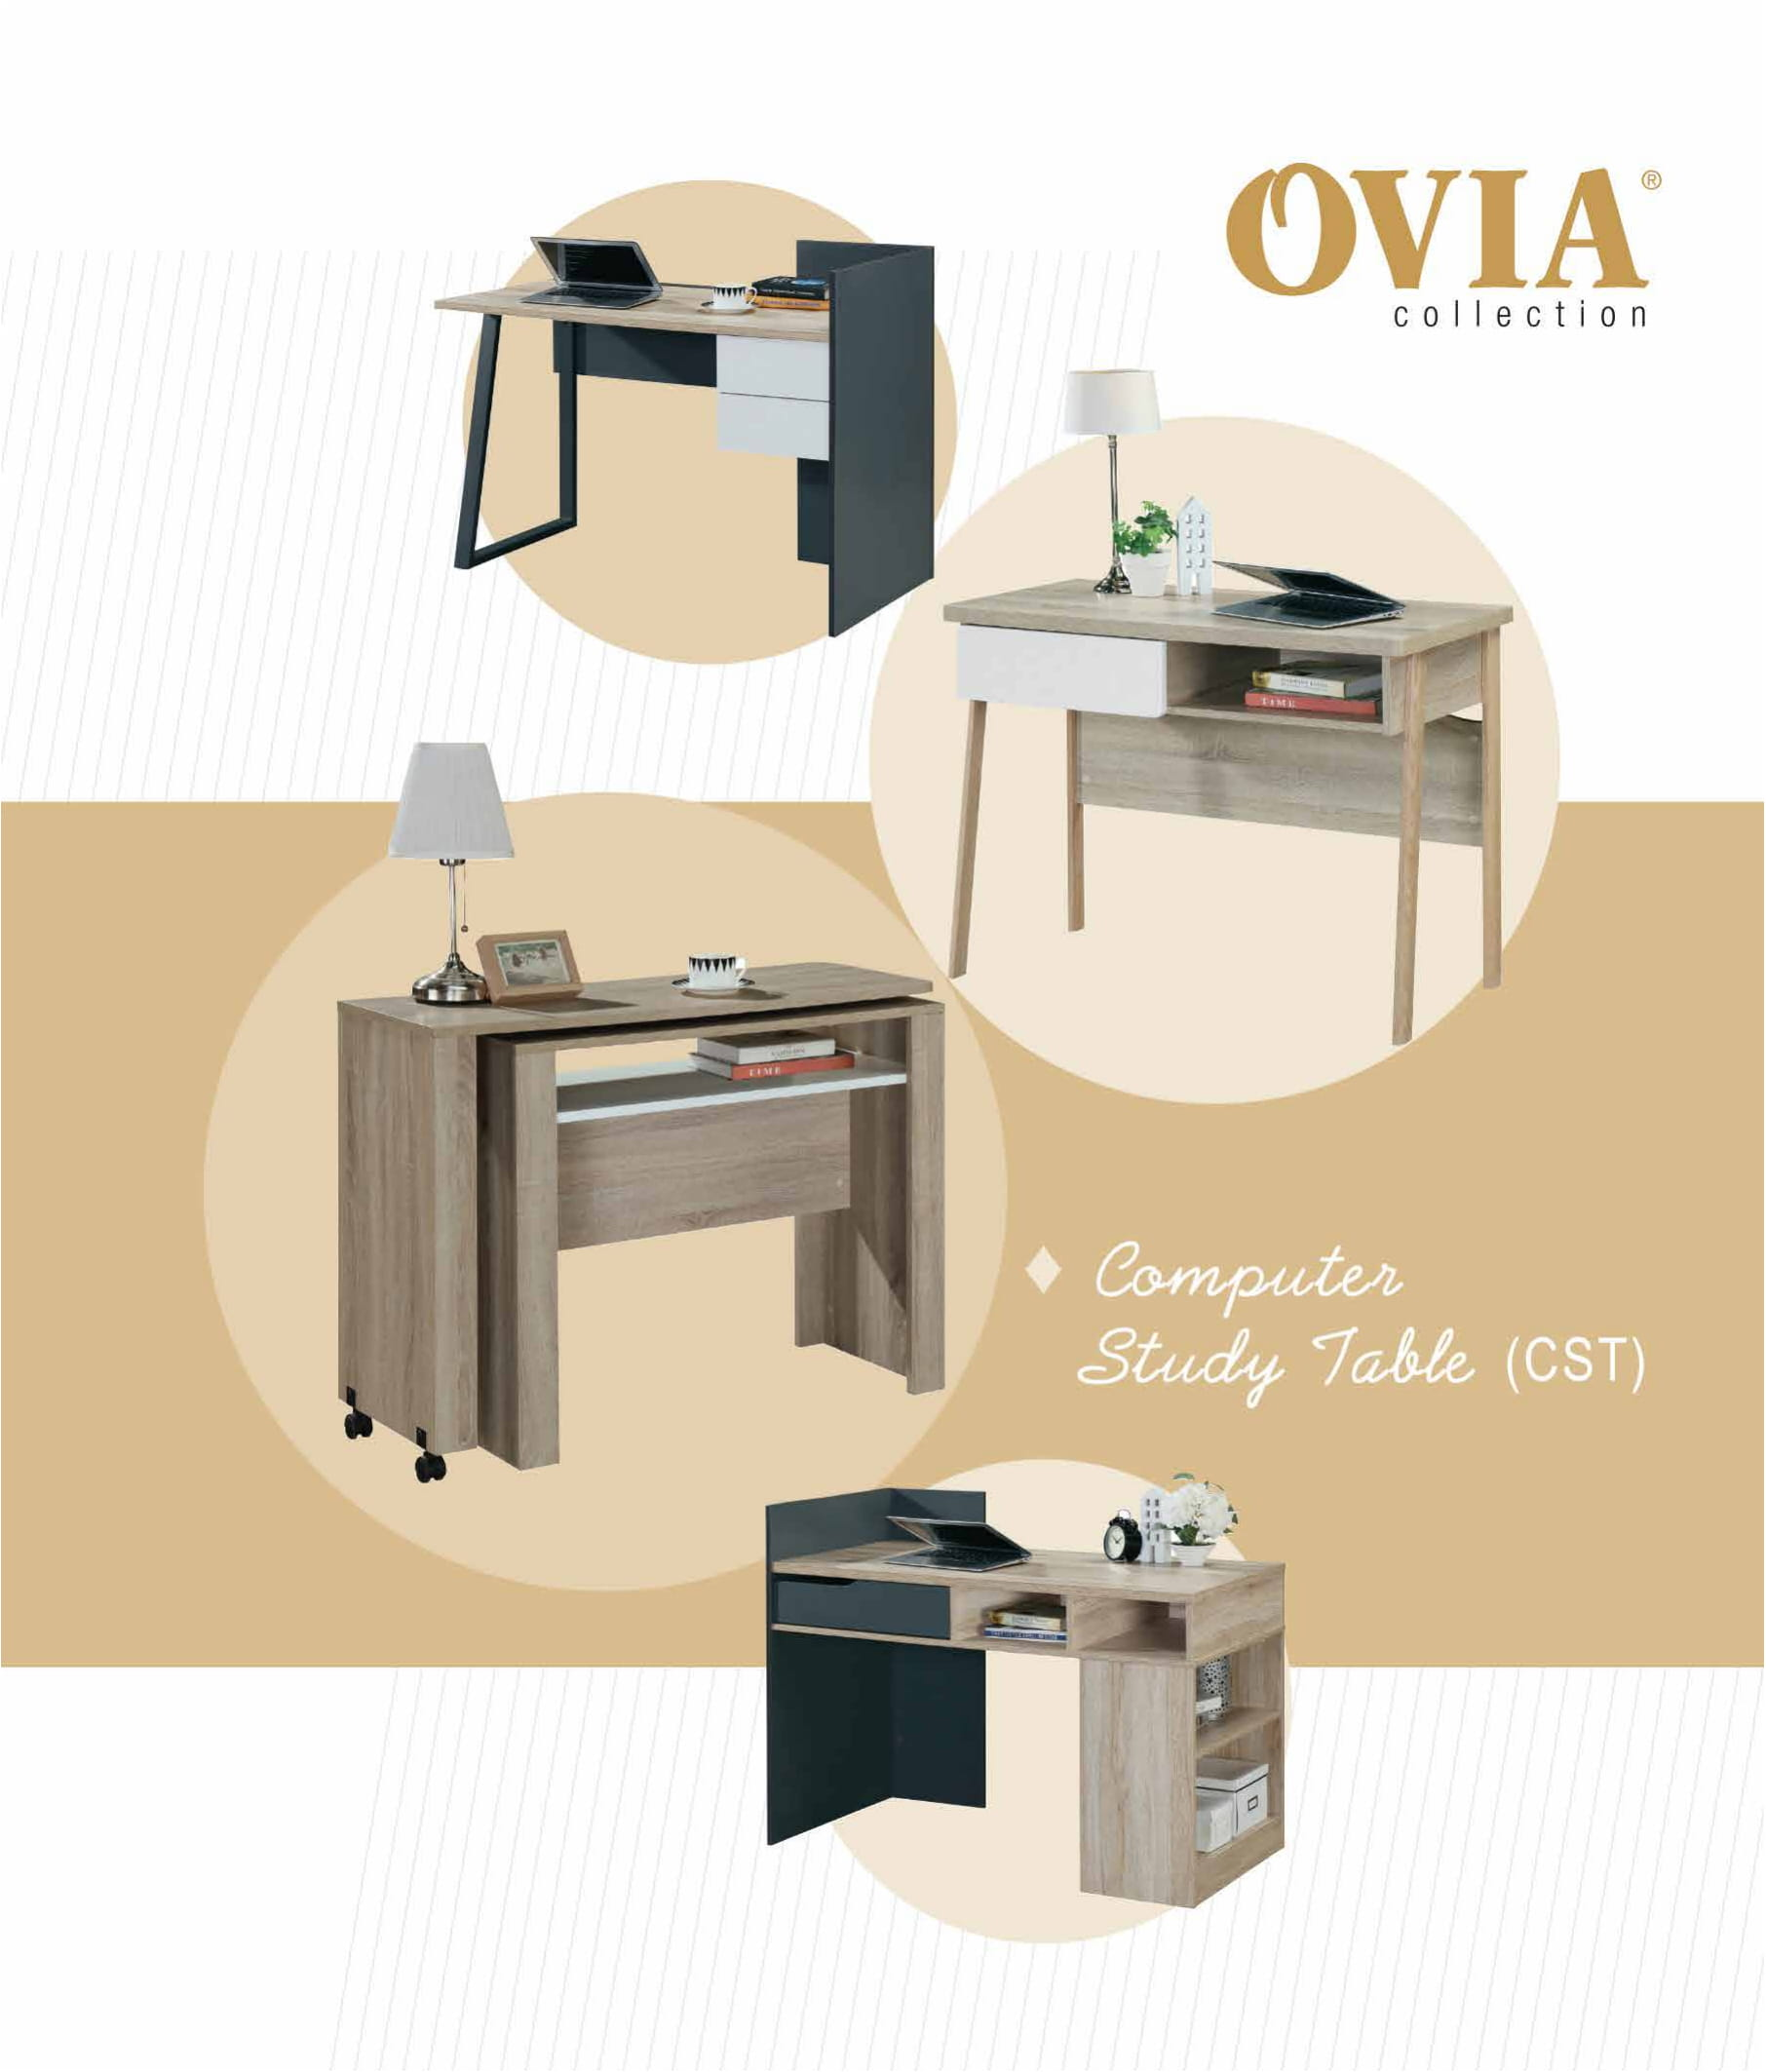 Ovia Collection 4-053